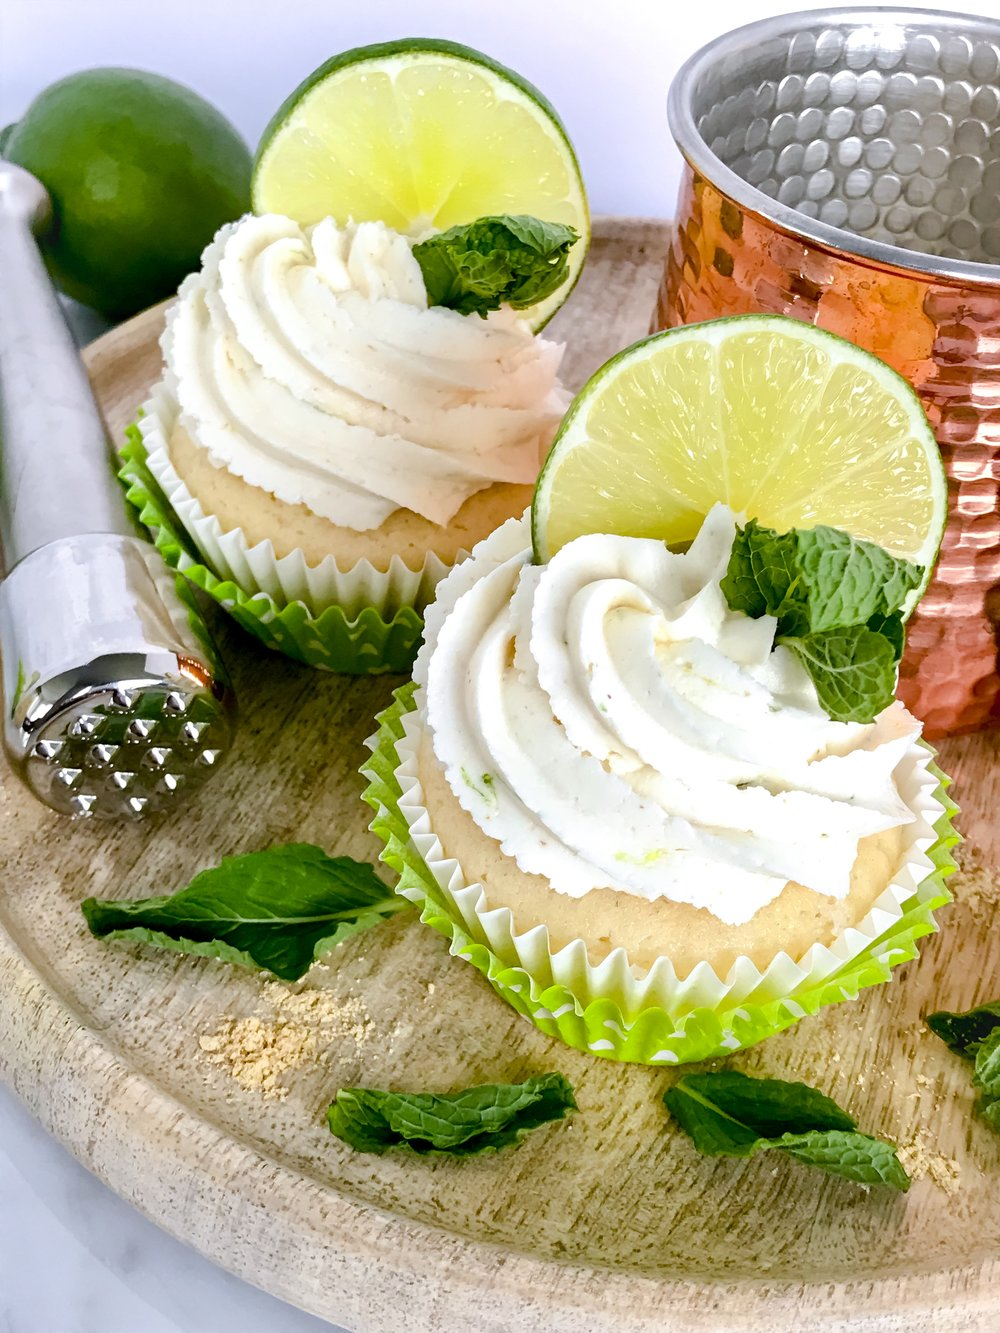 Ginger cake with ginger and lime-infused buttercream